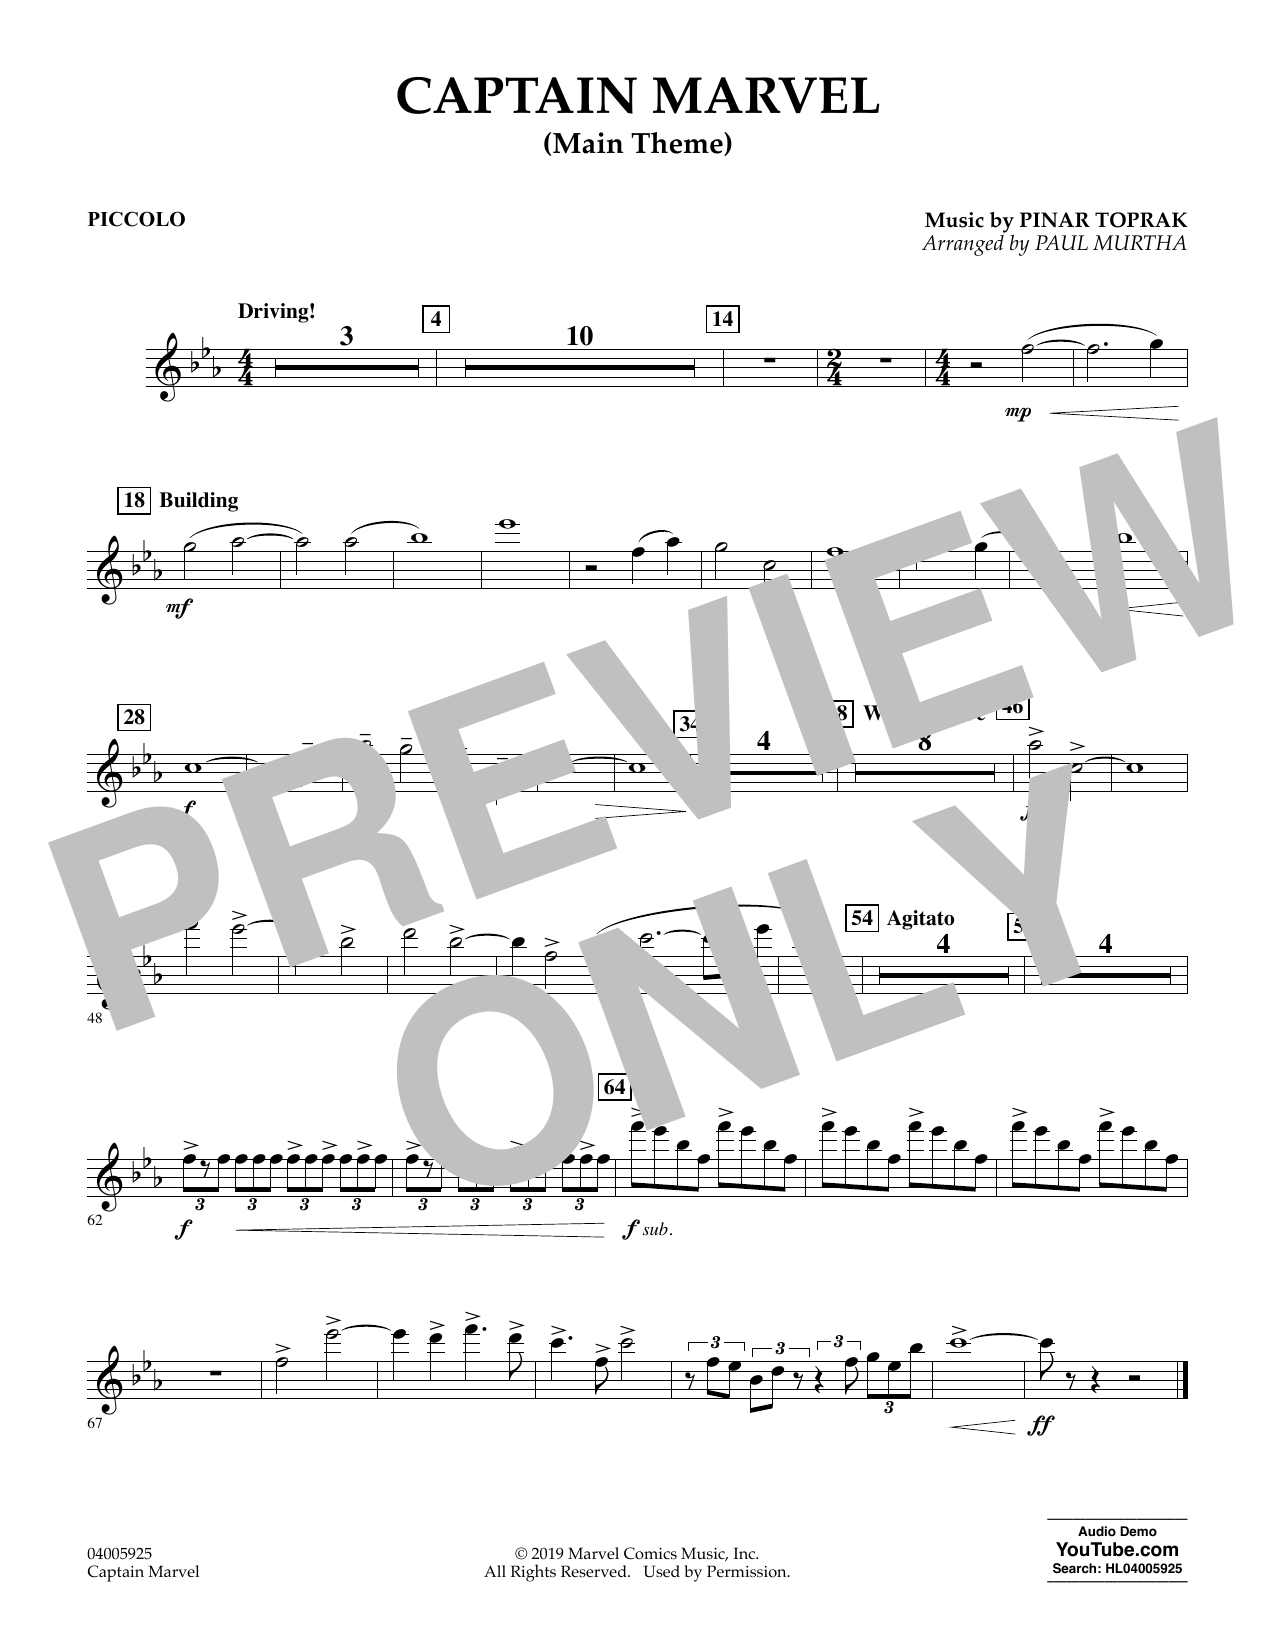 Pinar Toprak Captain Marvel (Main Theme) (arr. Paul Murtha) - Piccolo sheet music preview music notes and score for Concert Band including 1 page(s)